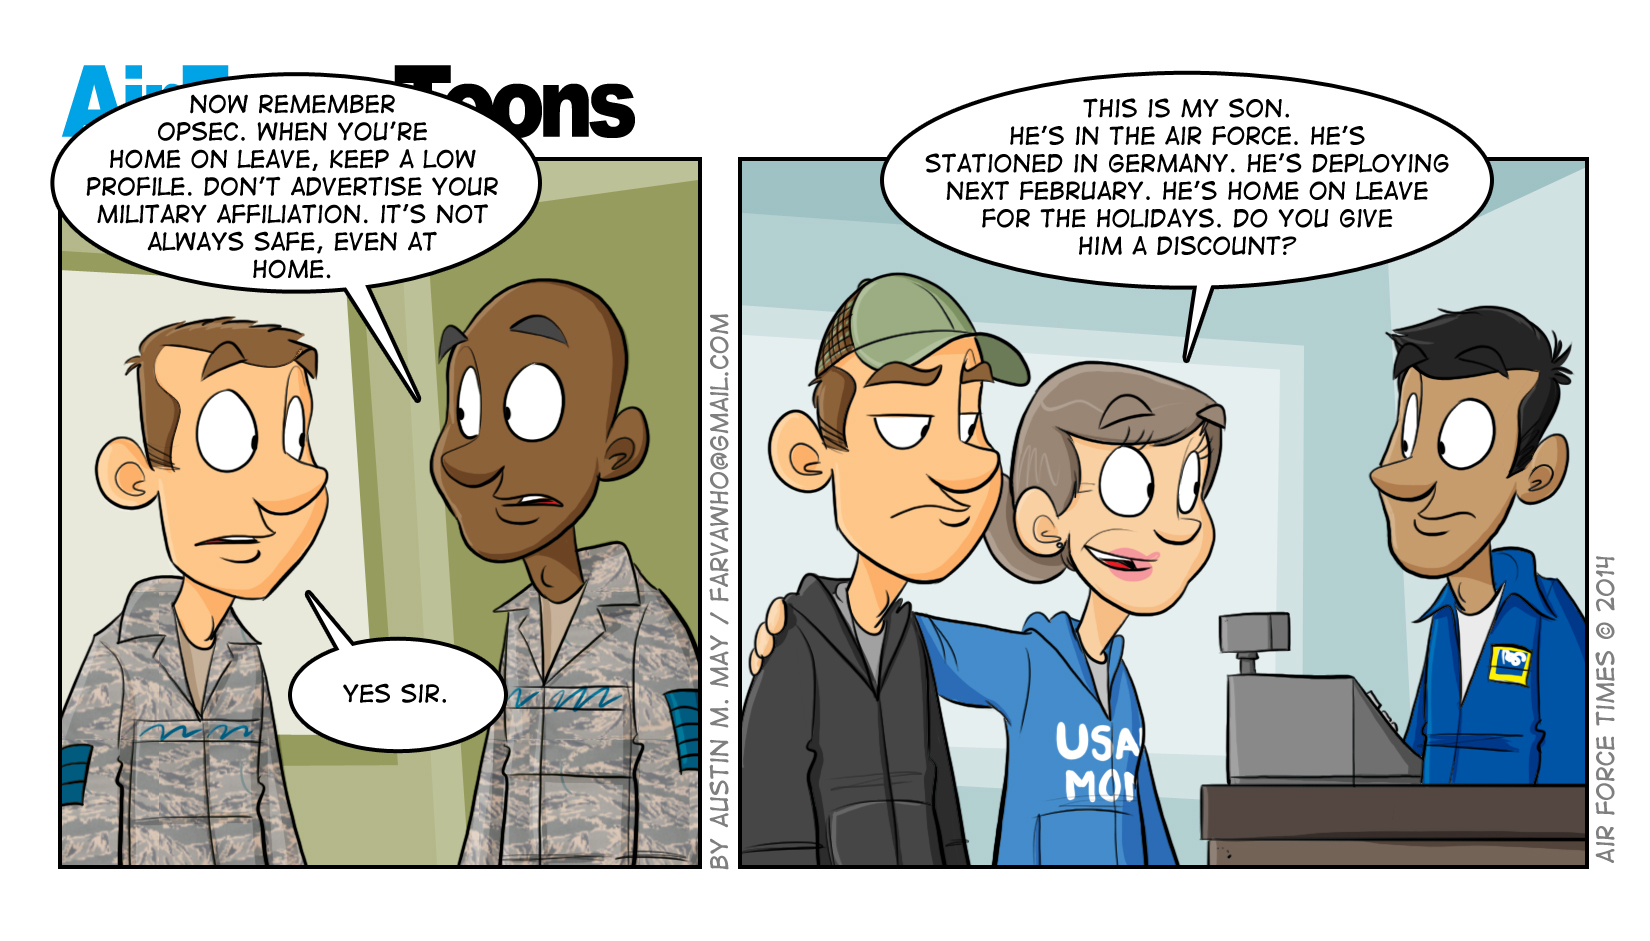 Air Force Times' Jan. 21 issue comic